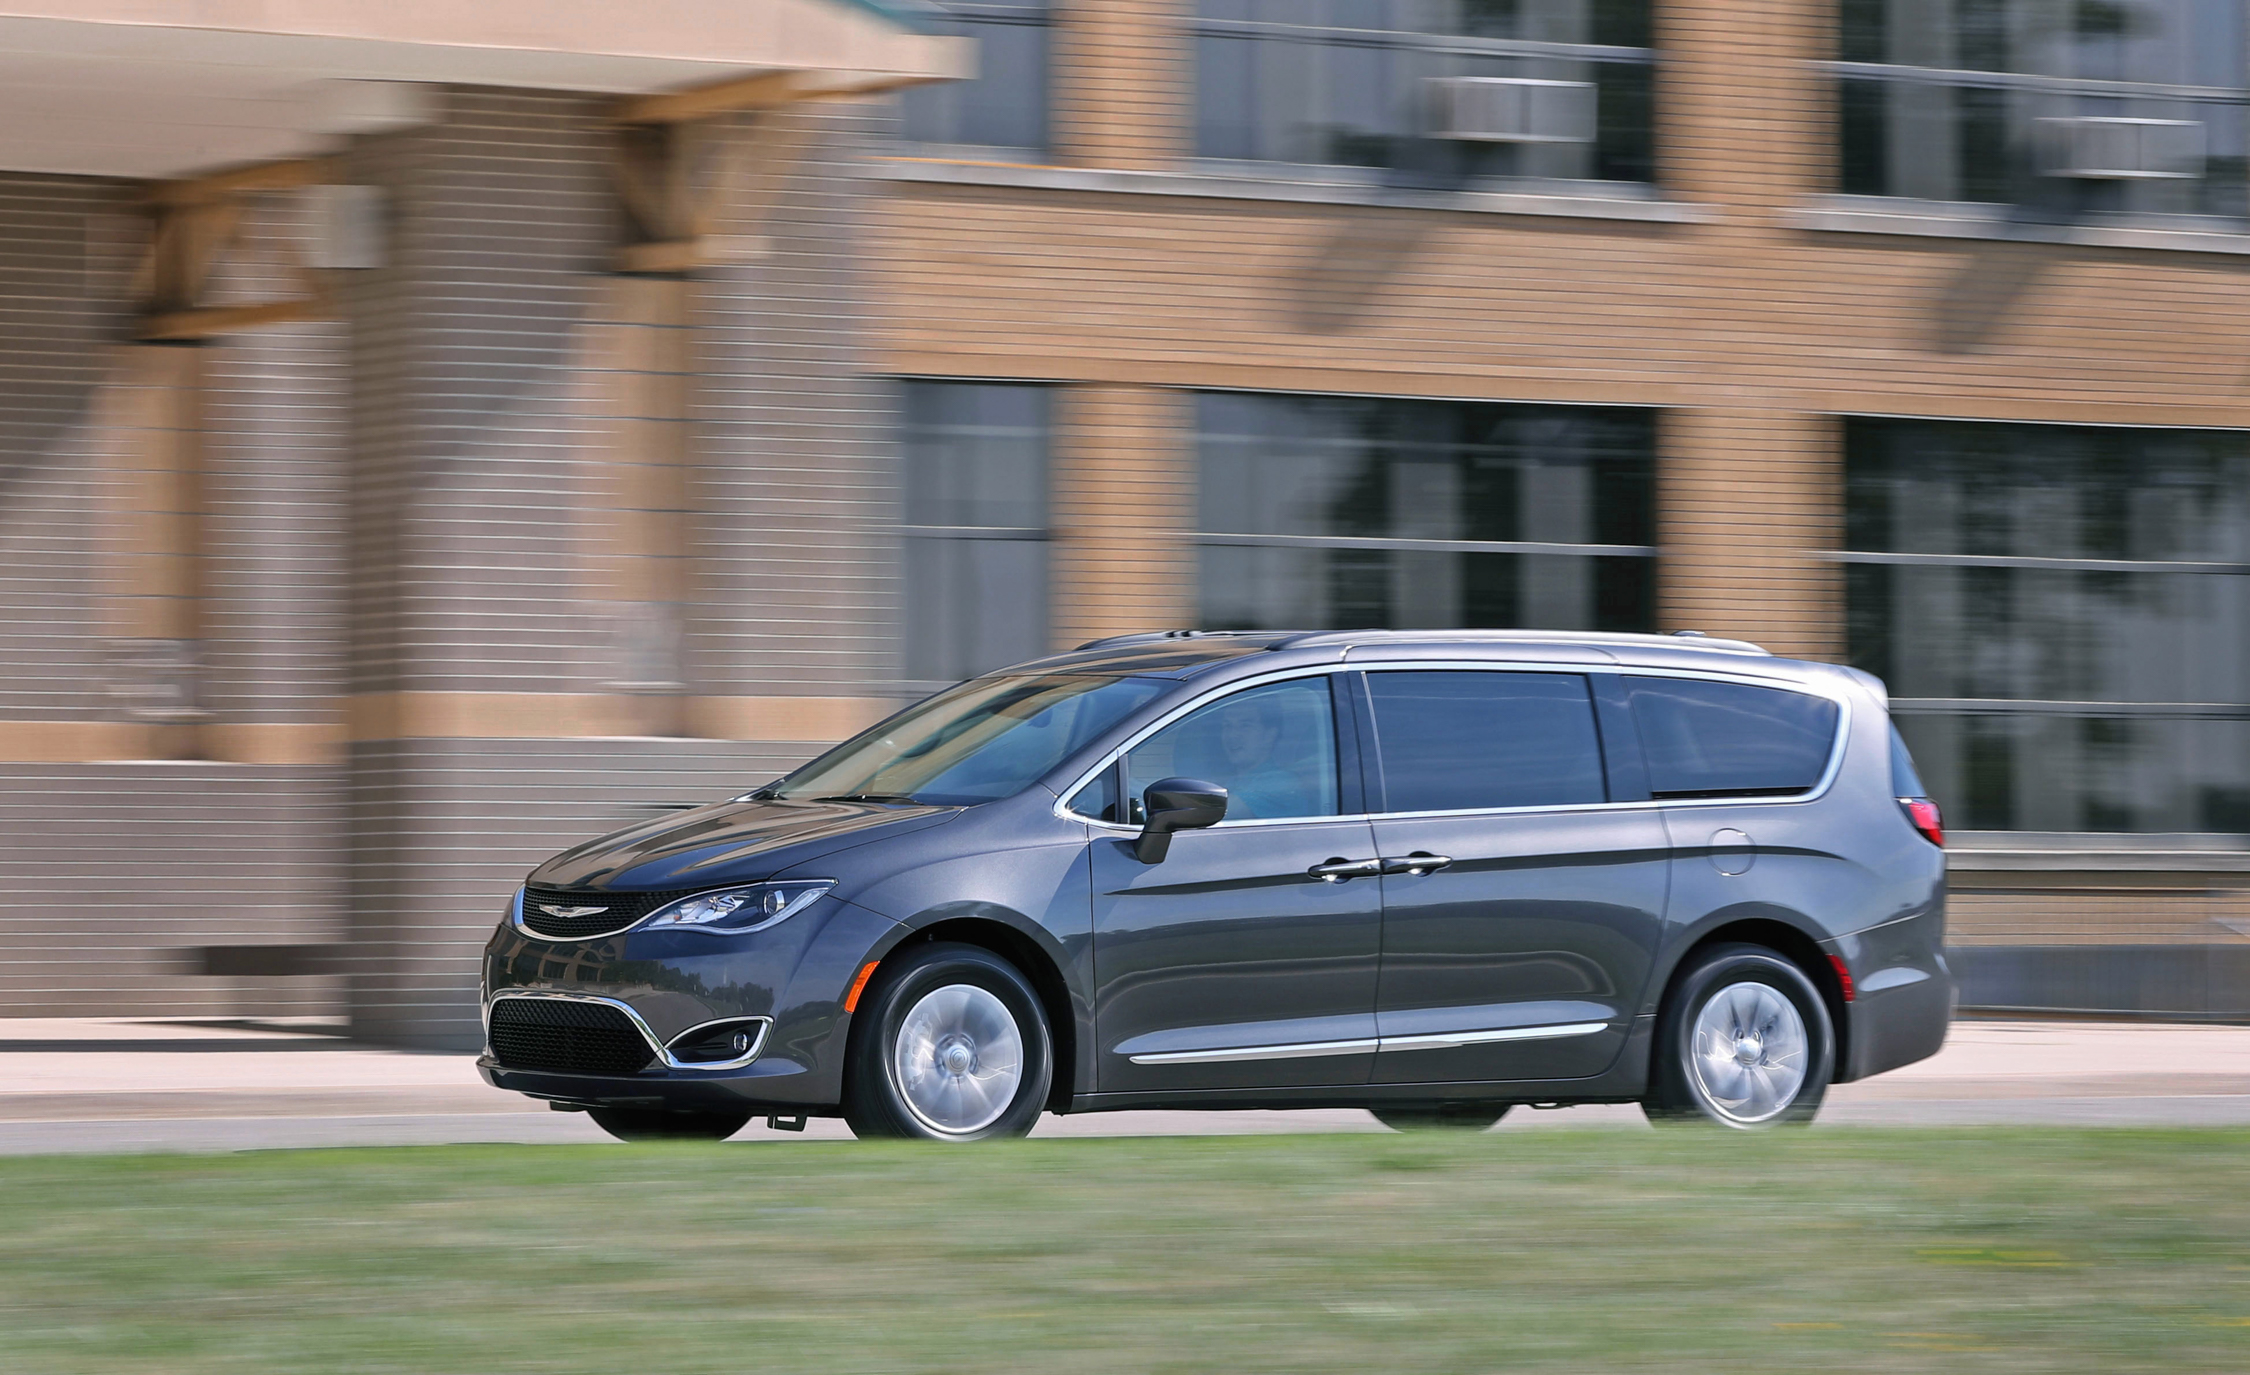 2017 Chrysler Pacifica Test Drive Side View (Photo 8 of 25)